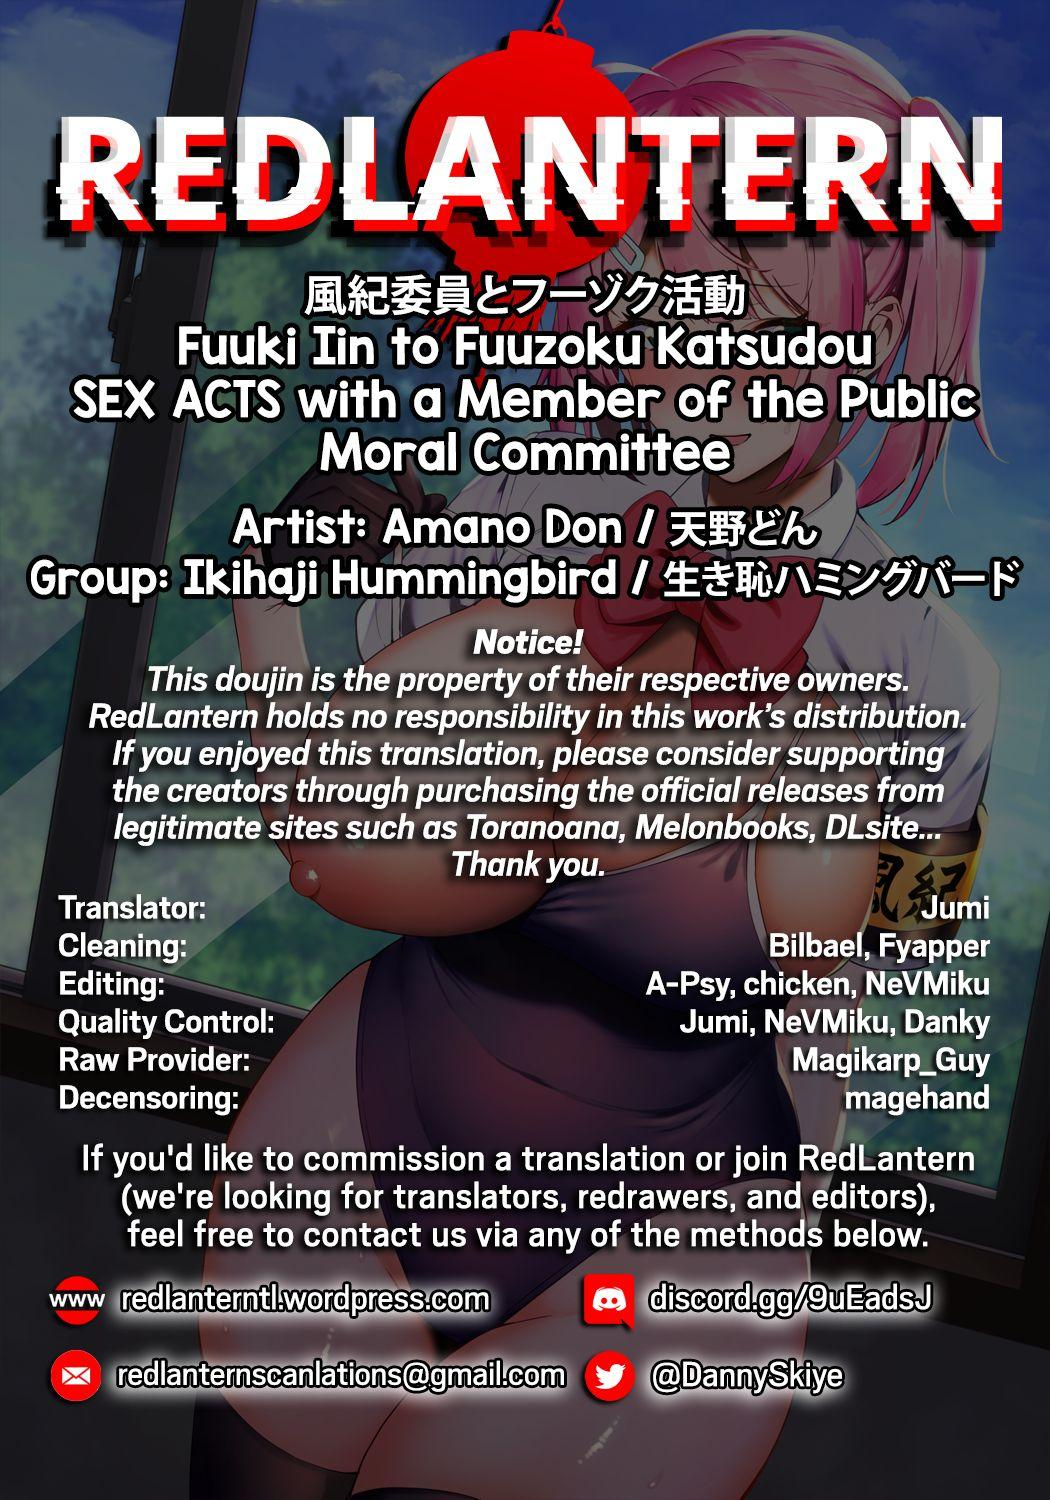 Fuuki Iin to Fuuzoku Katsudou | SEX ACTS with a Member of the Public Moral Committee 44